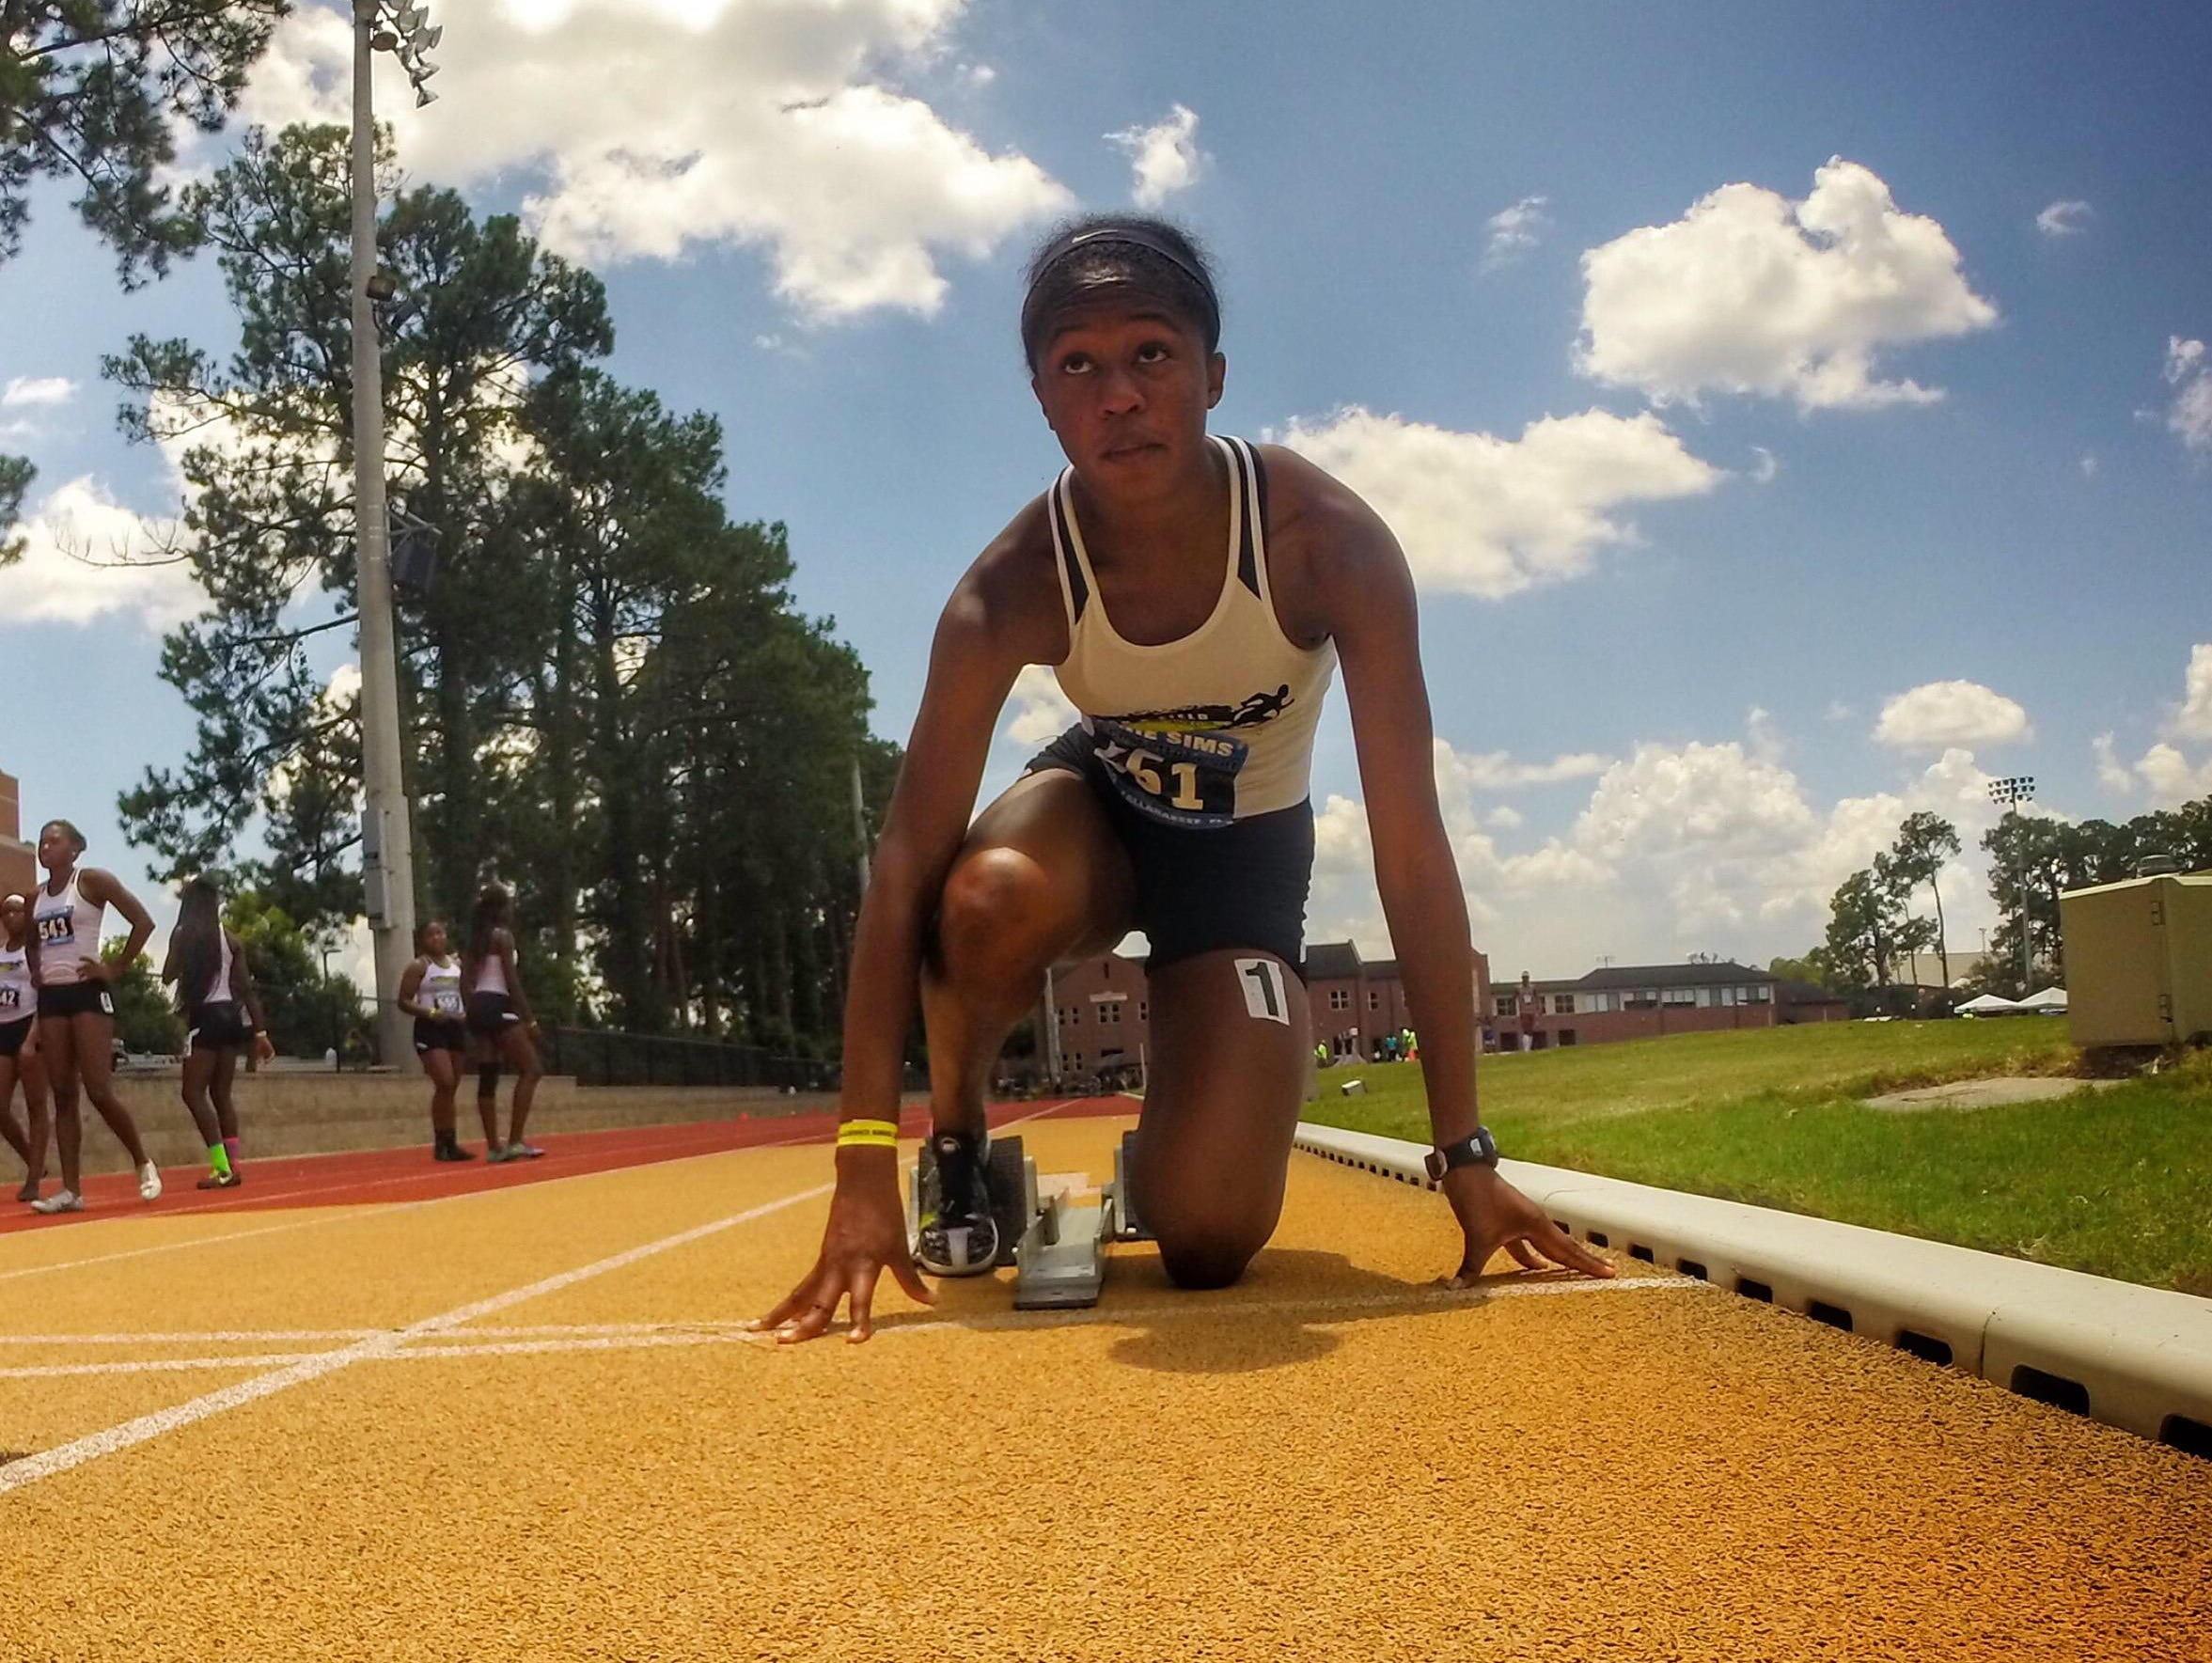 Chiles distance runner Jianni McDole has been improving her times through speed workouts this summer with track club North Florida Speed.